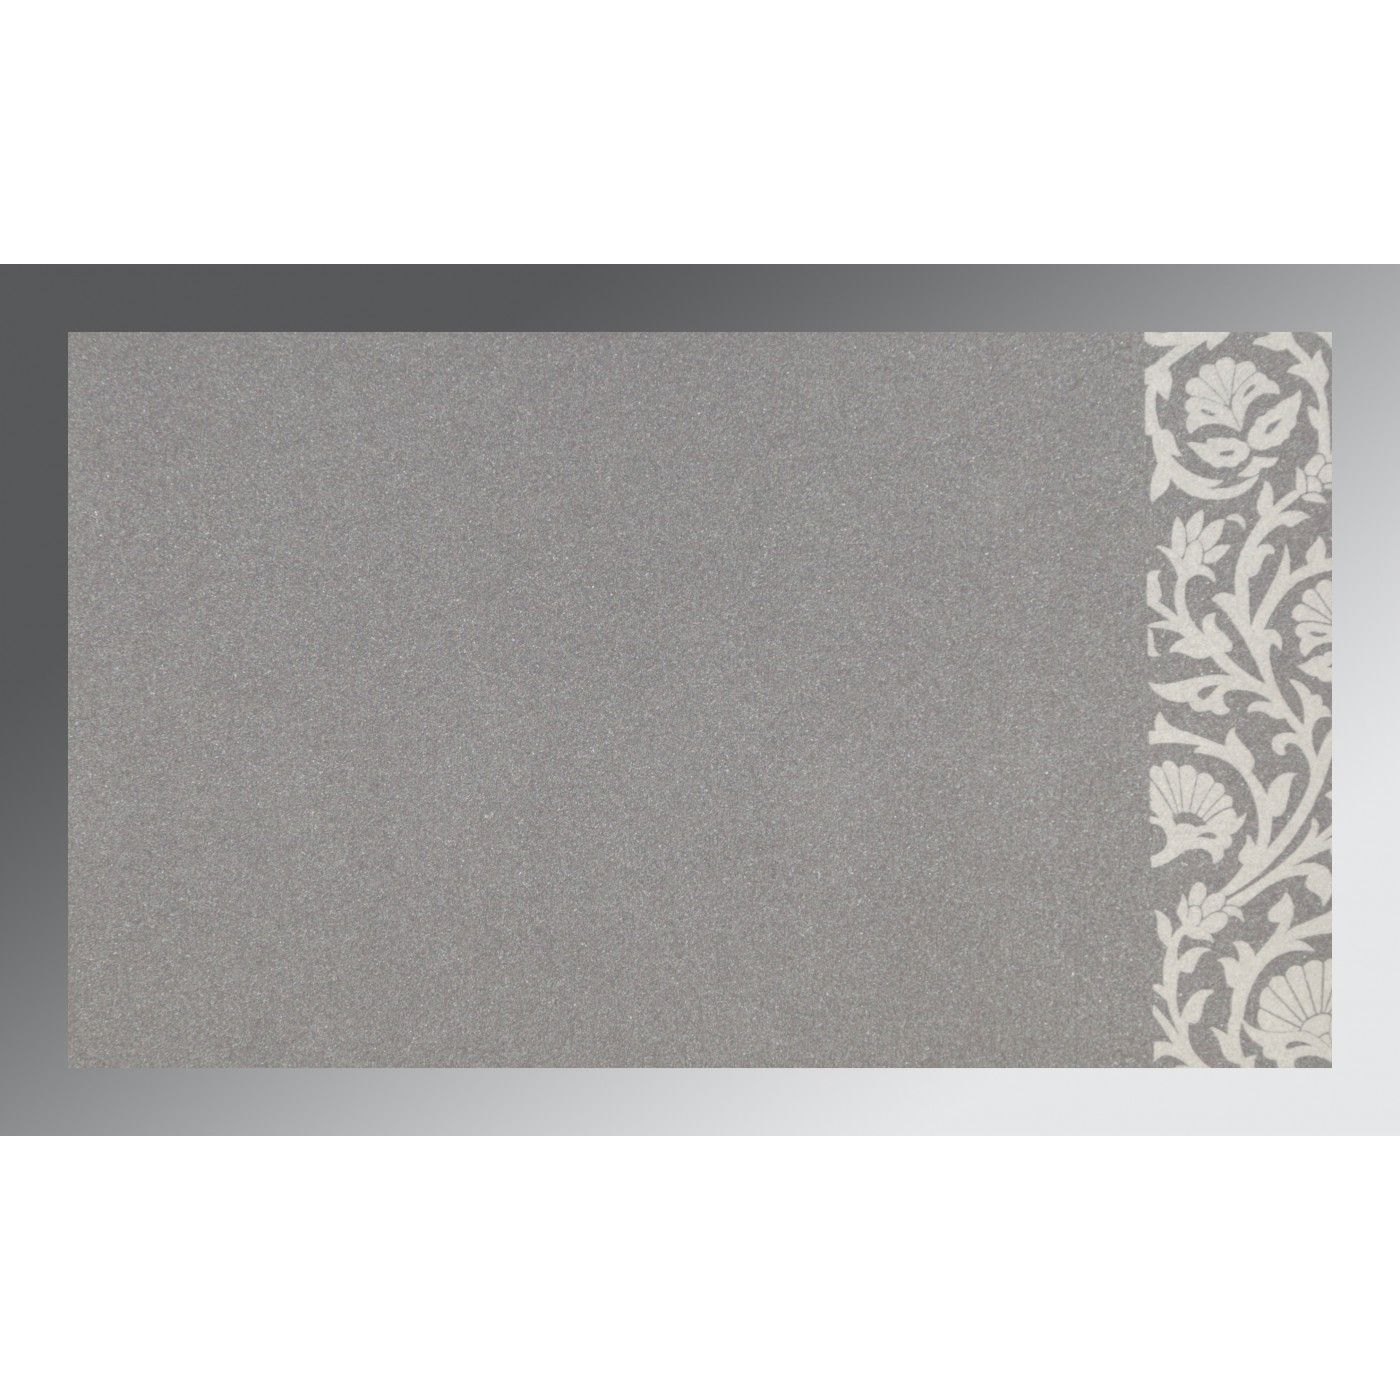 GREY SCREEN PRINTED WEDDING INVITATION : CG-1371 - IndianWeddingCards